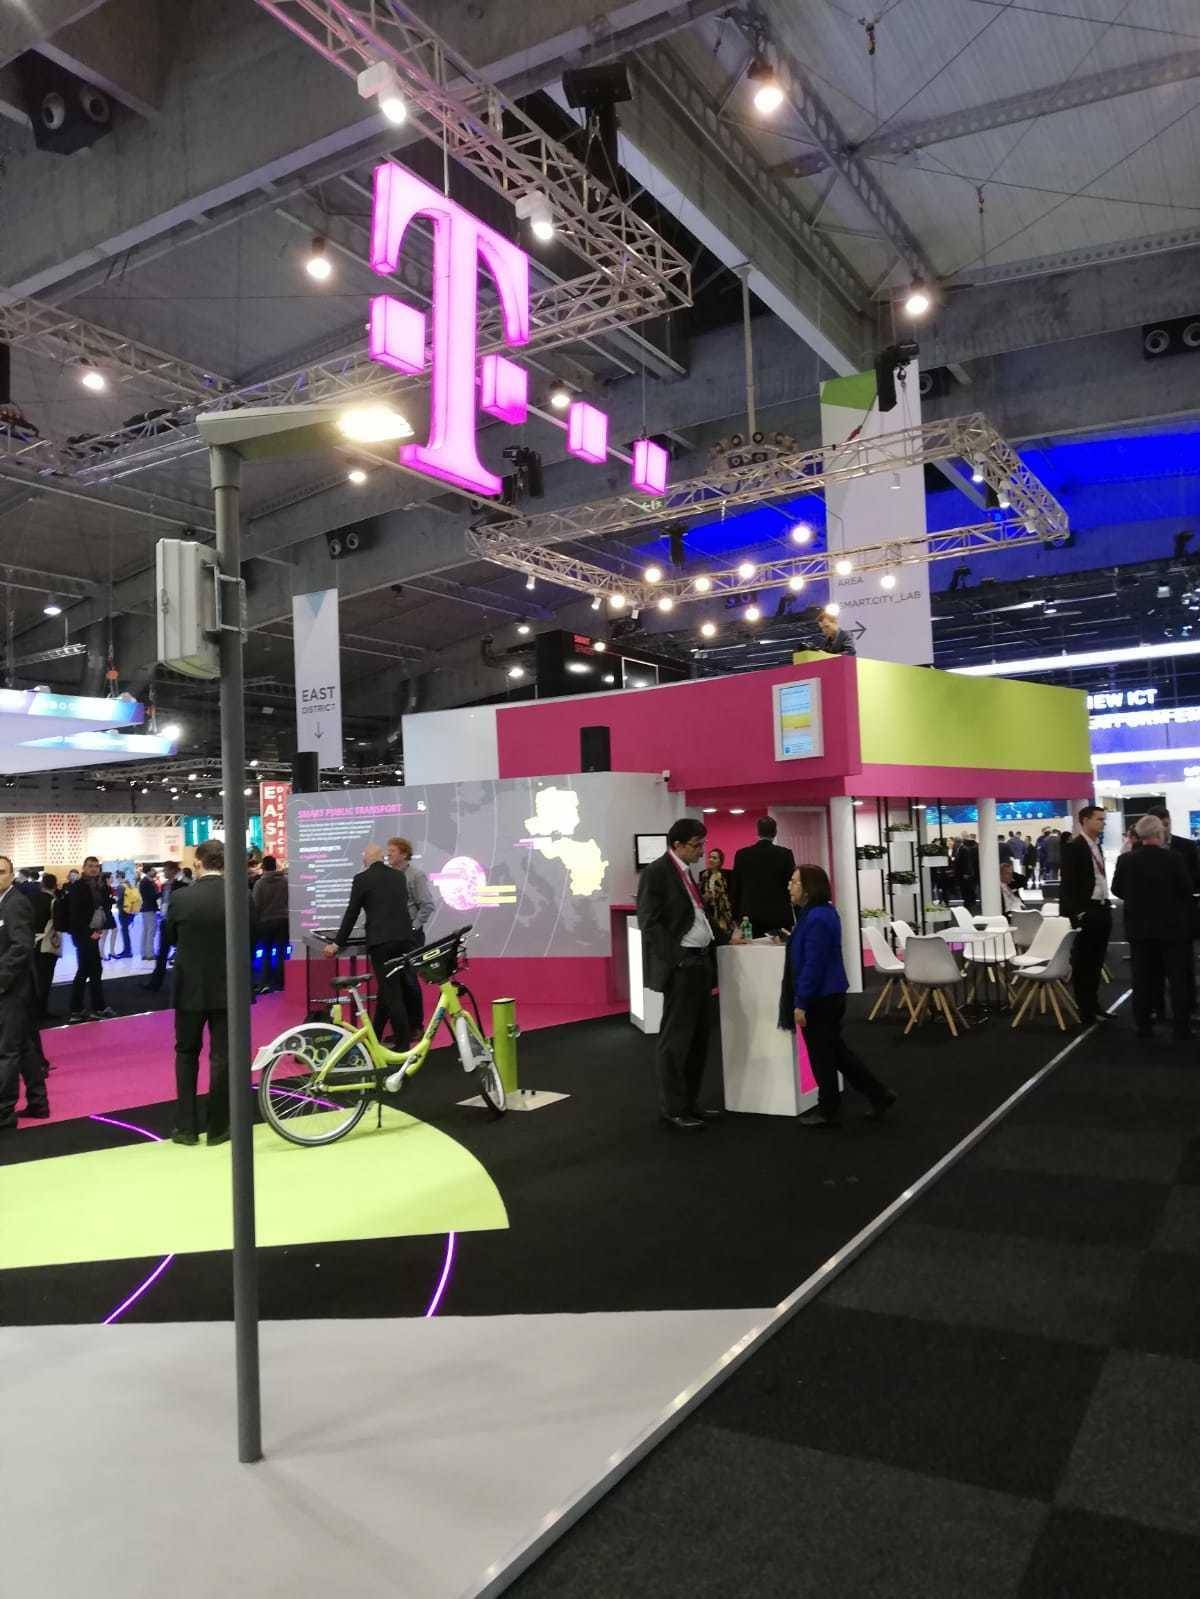 Deutsche Telekom and T-Systems International GmbH showcasing inteliLIGHT NB-IoT compatible smart street lighting solution